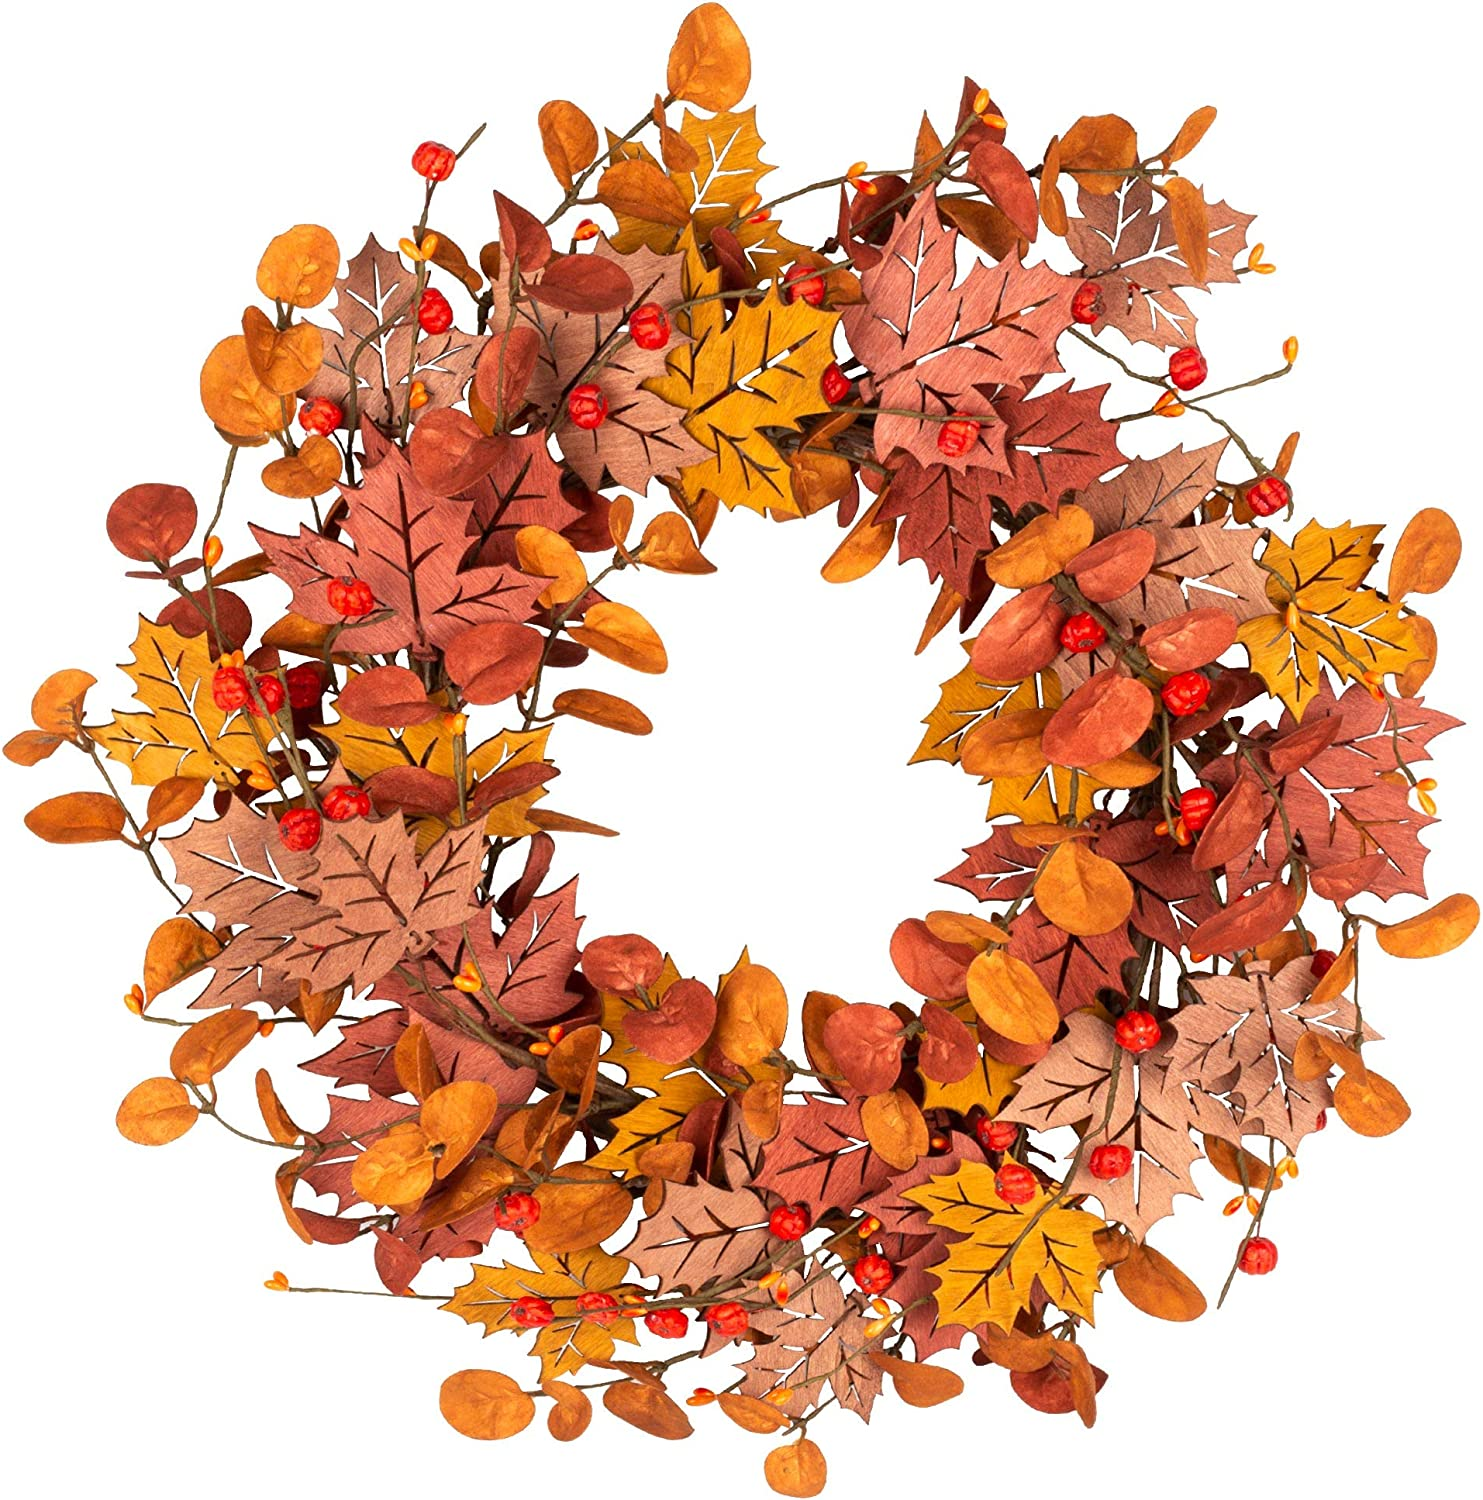 VGIA 18 InchFall Wreath Front Door Wreath Autumn Wreath with Wood Maple Leaves AutumnDecorations with Golden andRed Foliagefor Home